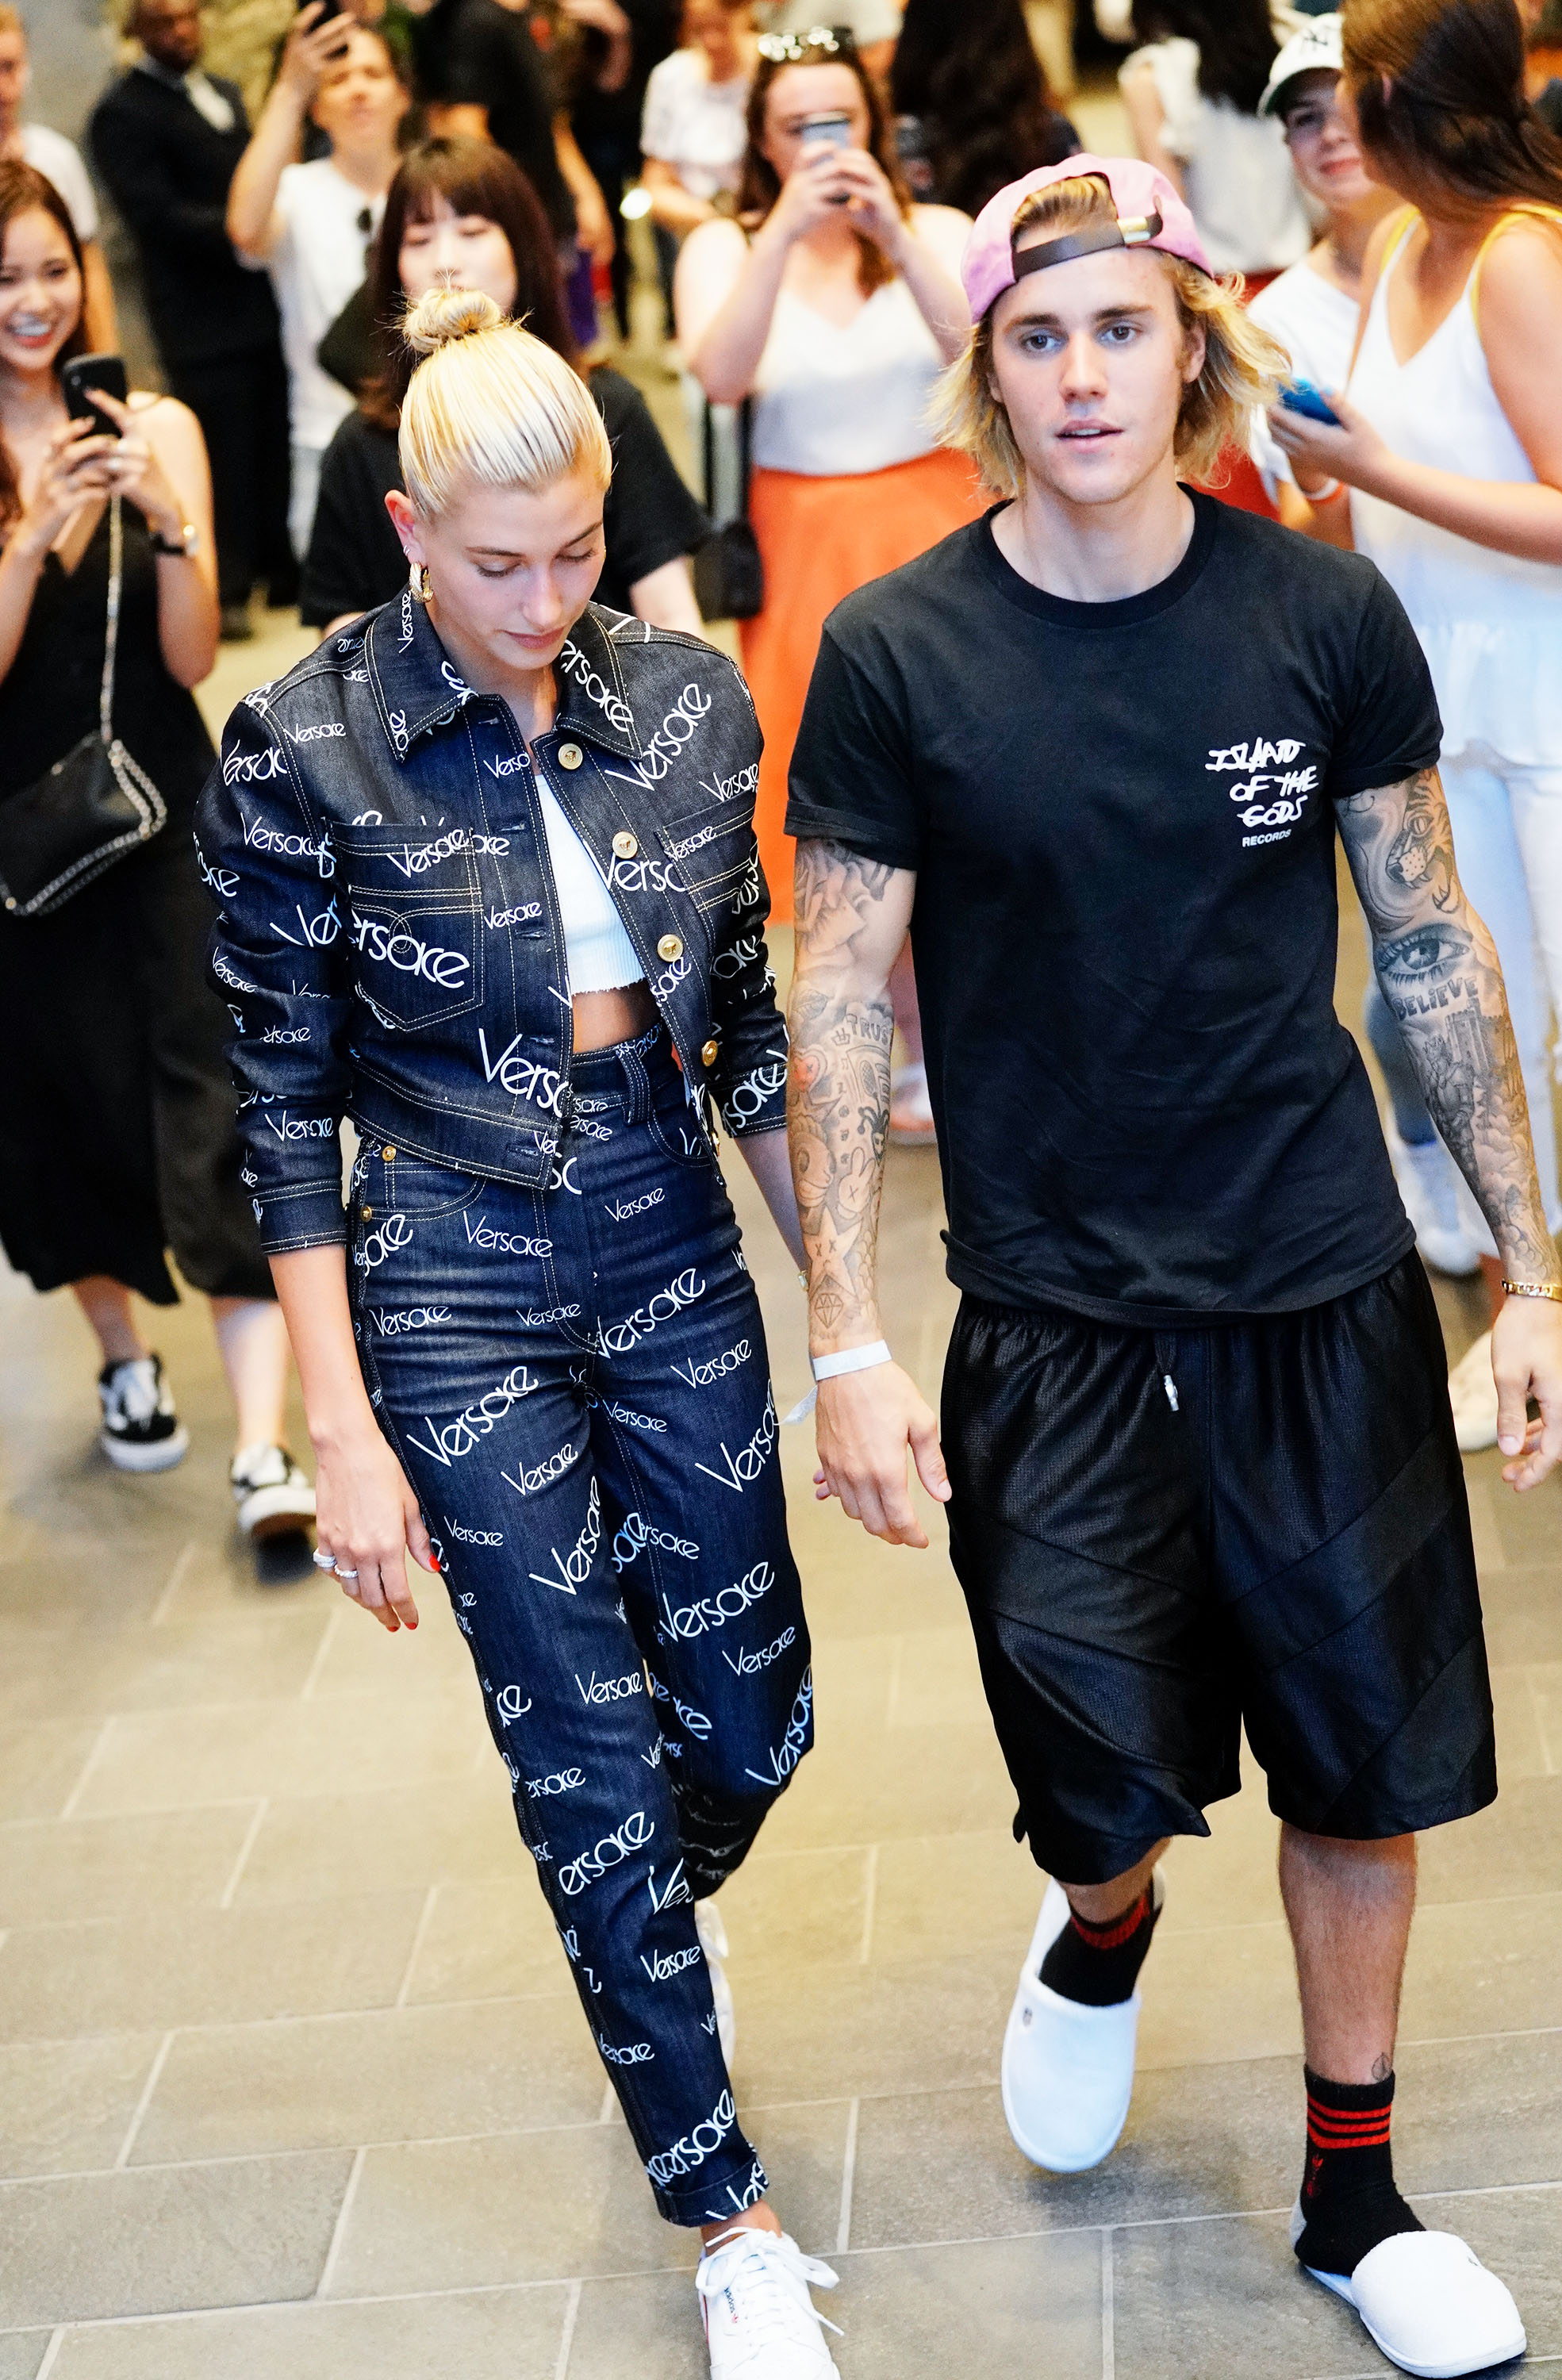 Justin Beiber and Hailey Baldwin Engaged